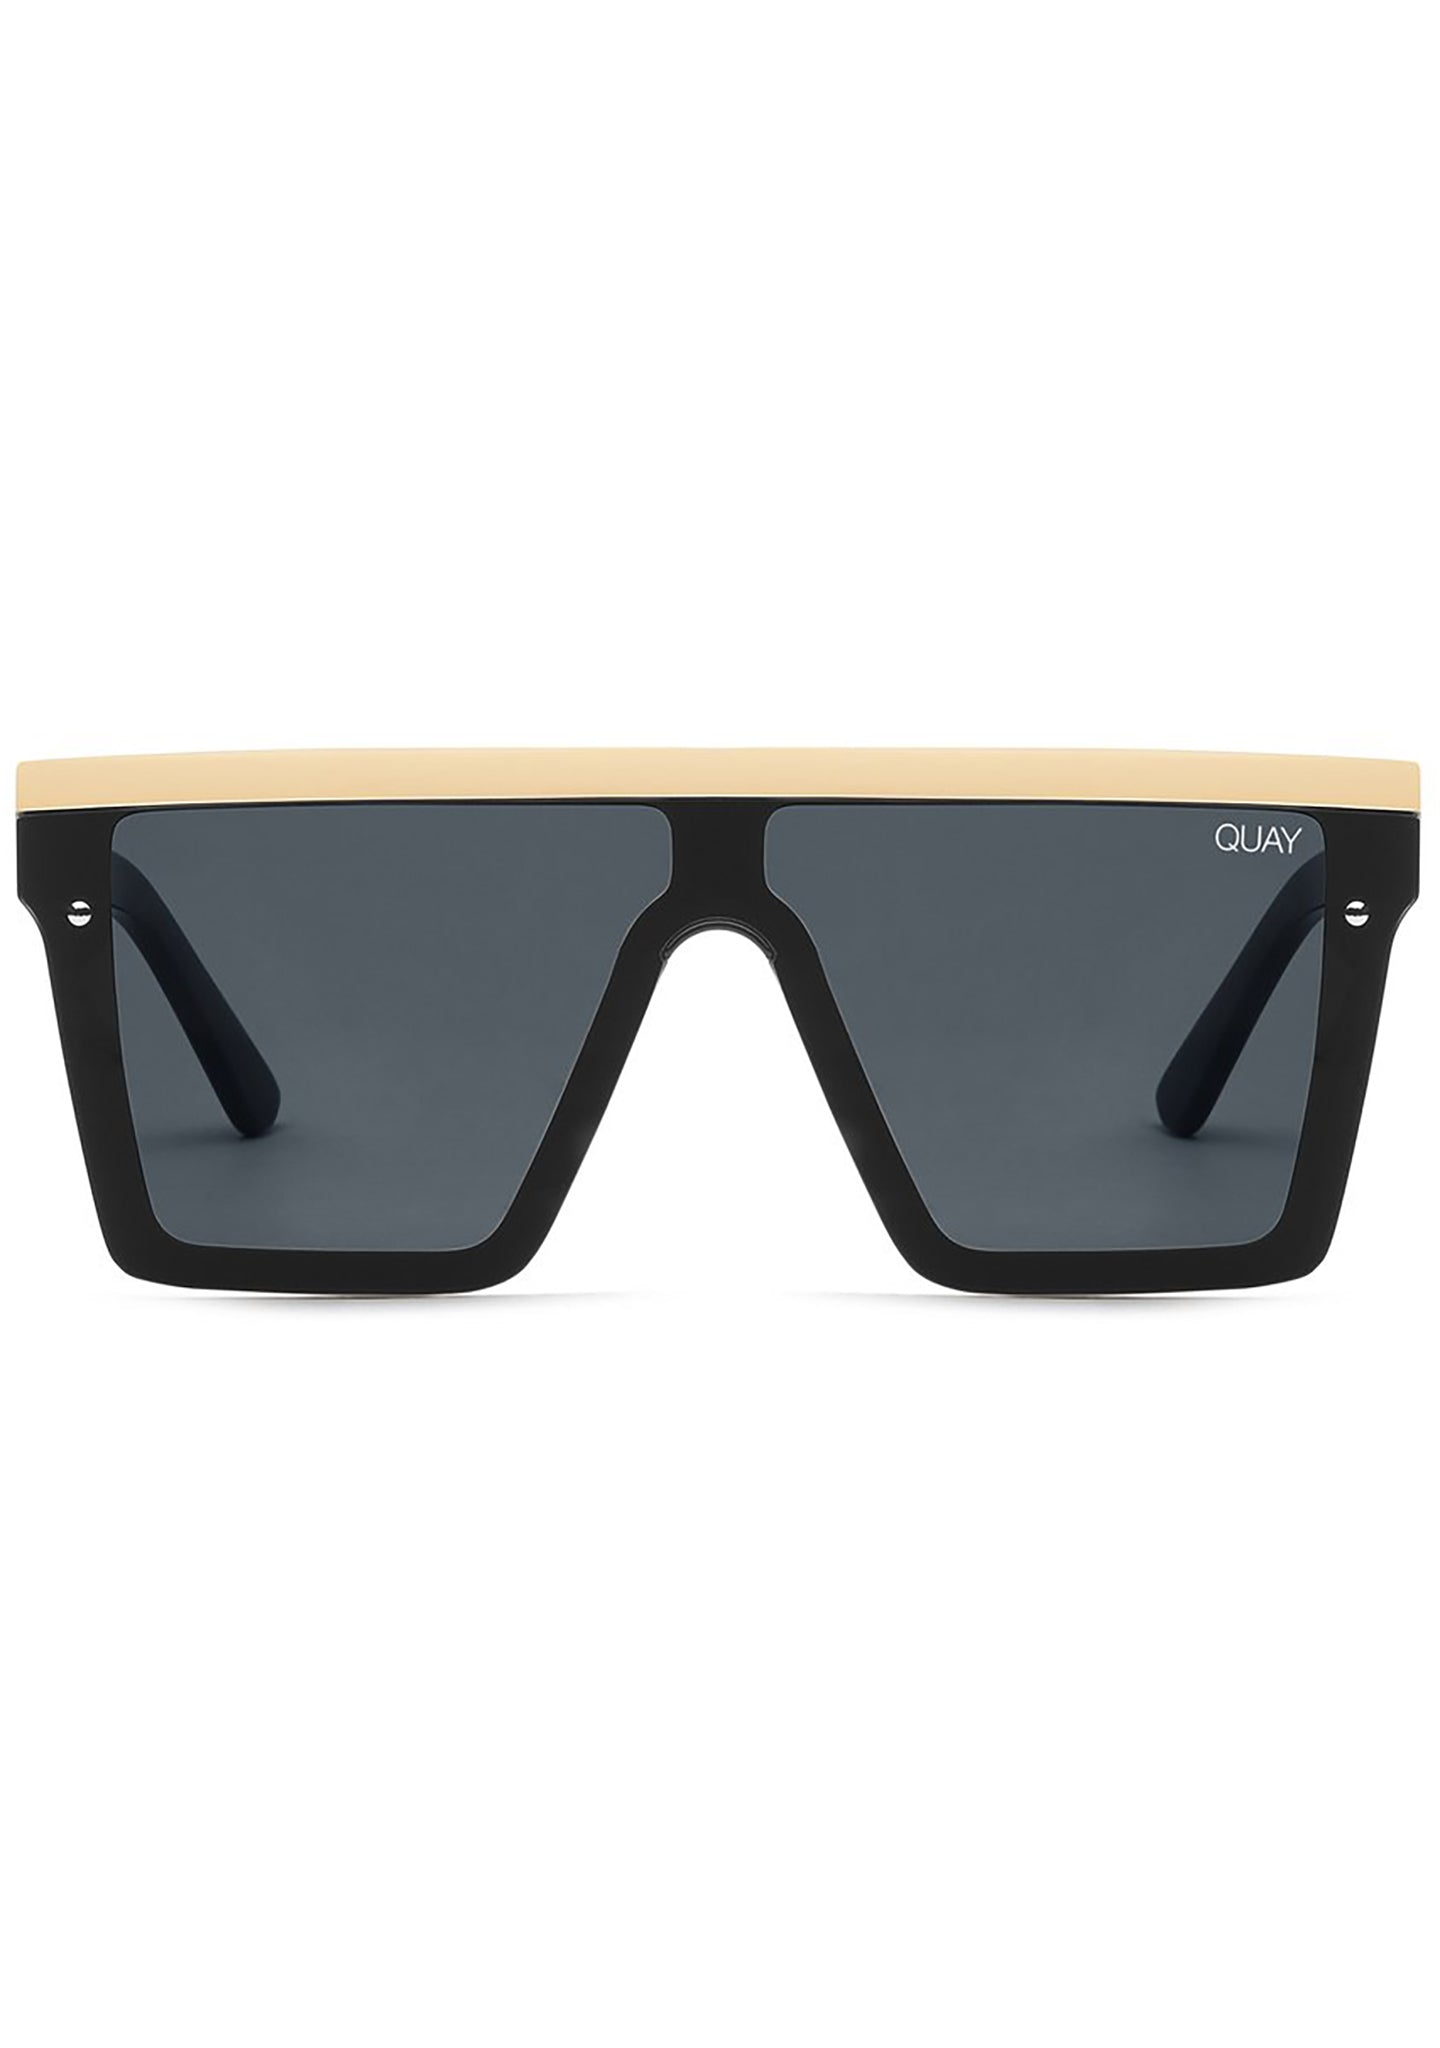 Hindsight Sunglasses in Black/Gold